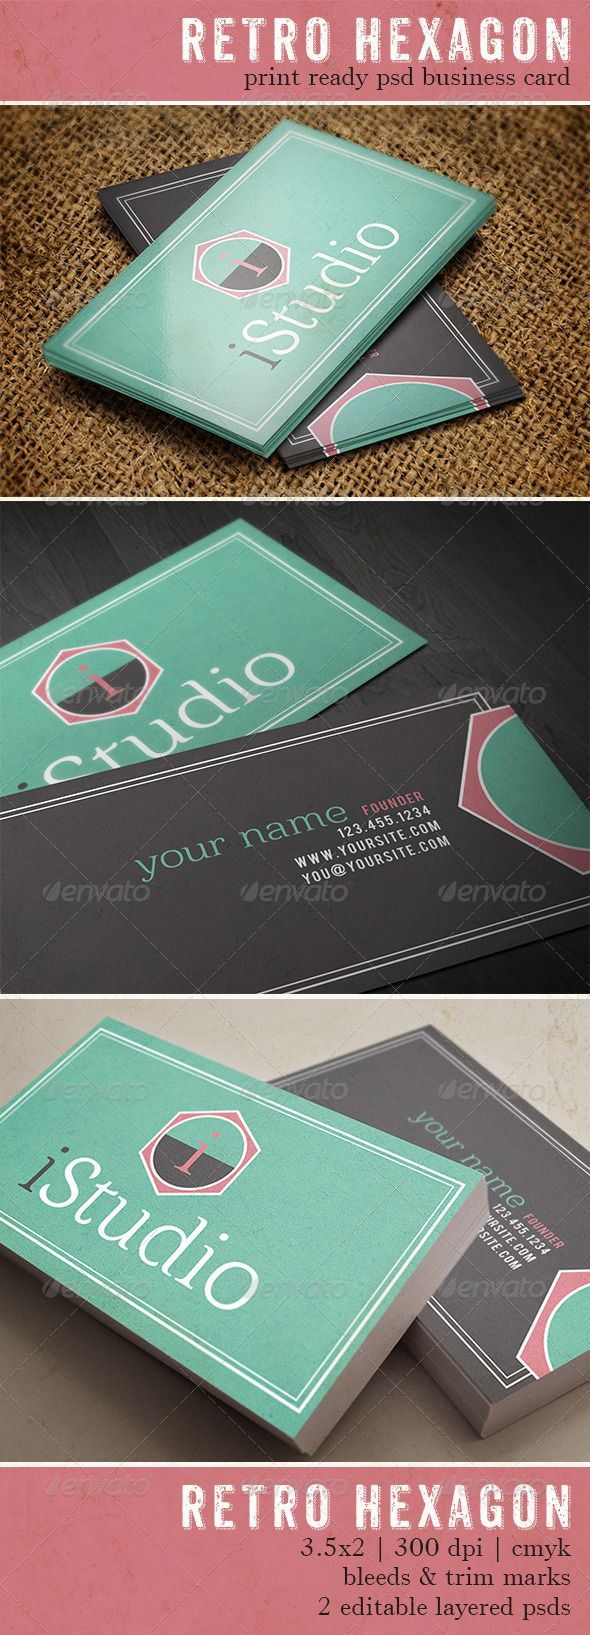 92 best print templates images on pinterest leaflet design retro hexagon business card magicingreecefo Image collections